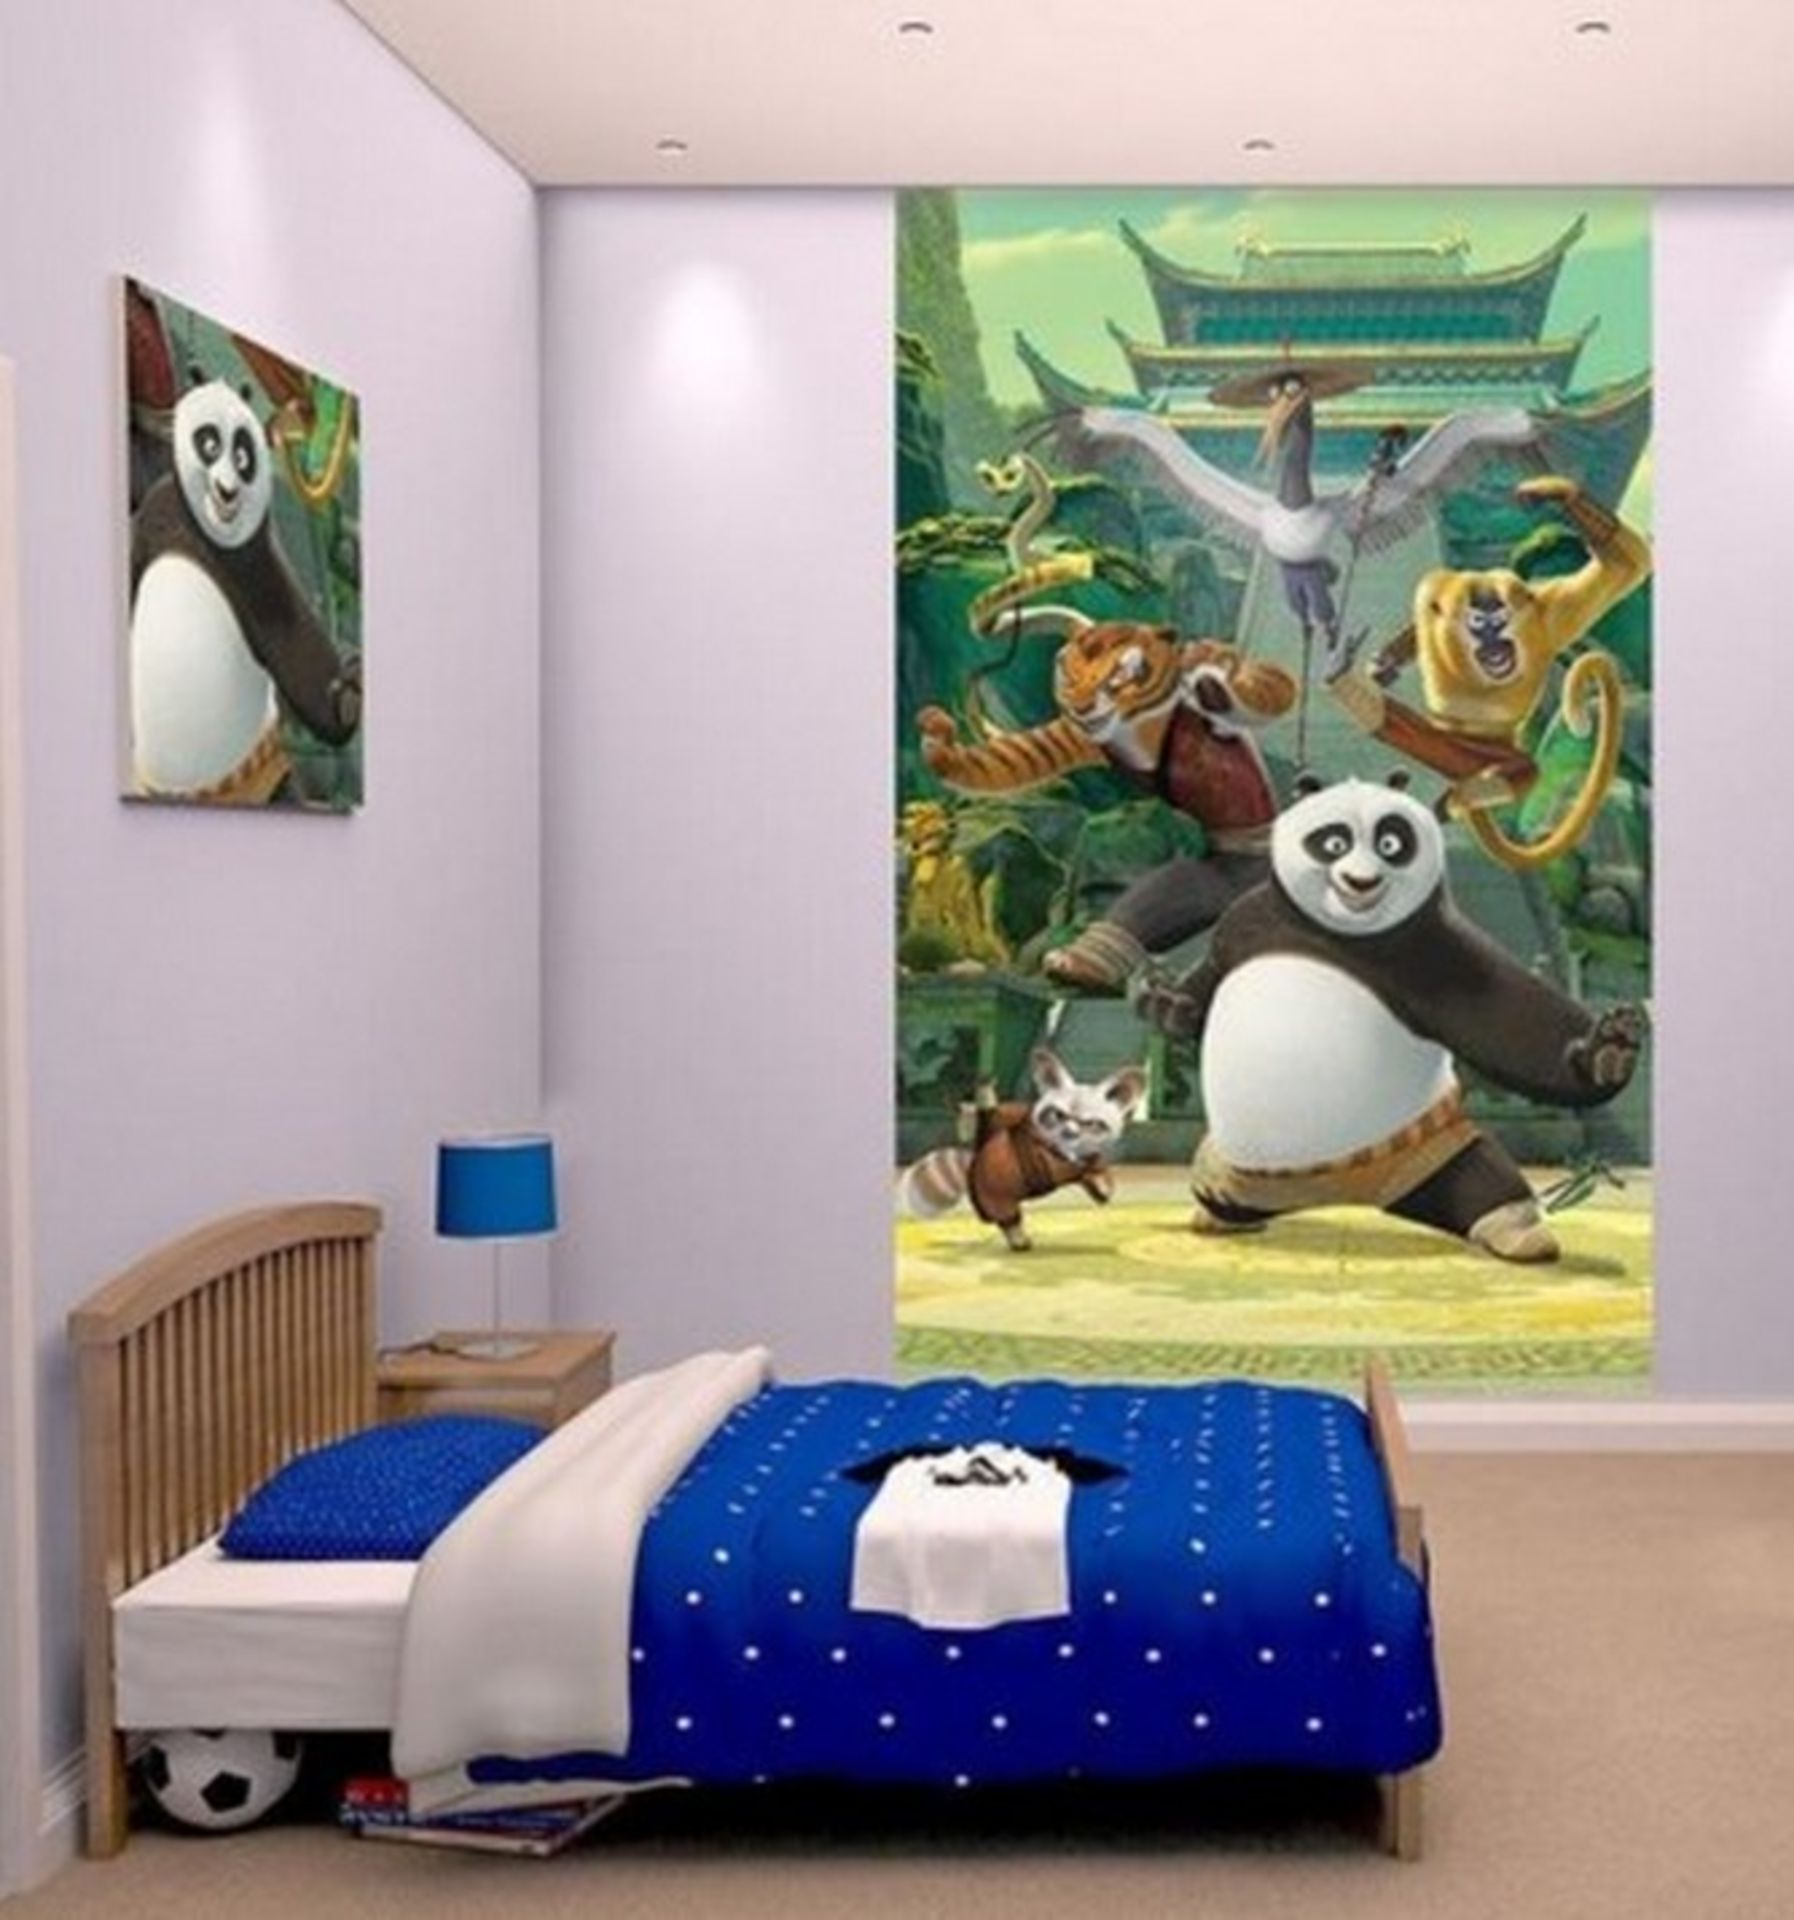 8 Mixed Large Wall Murals You Will Get A Mix Of 3 Different Designs - Image 2 of 3